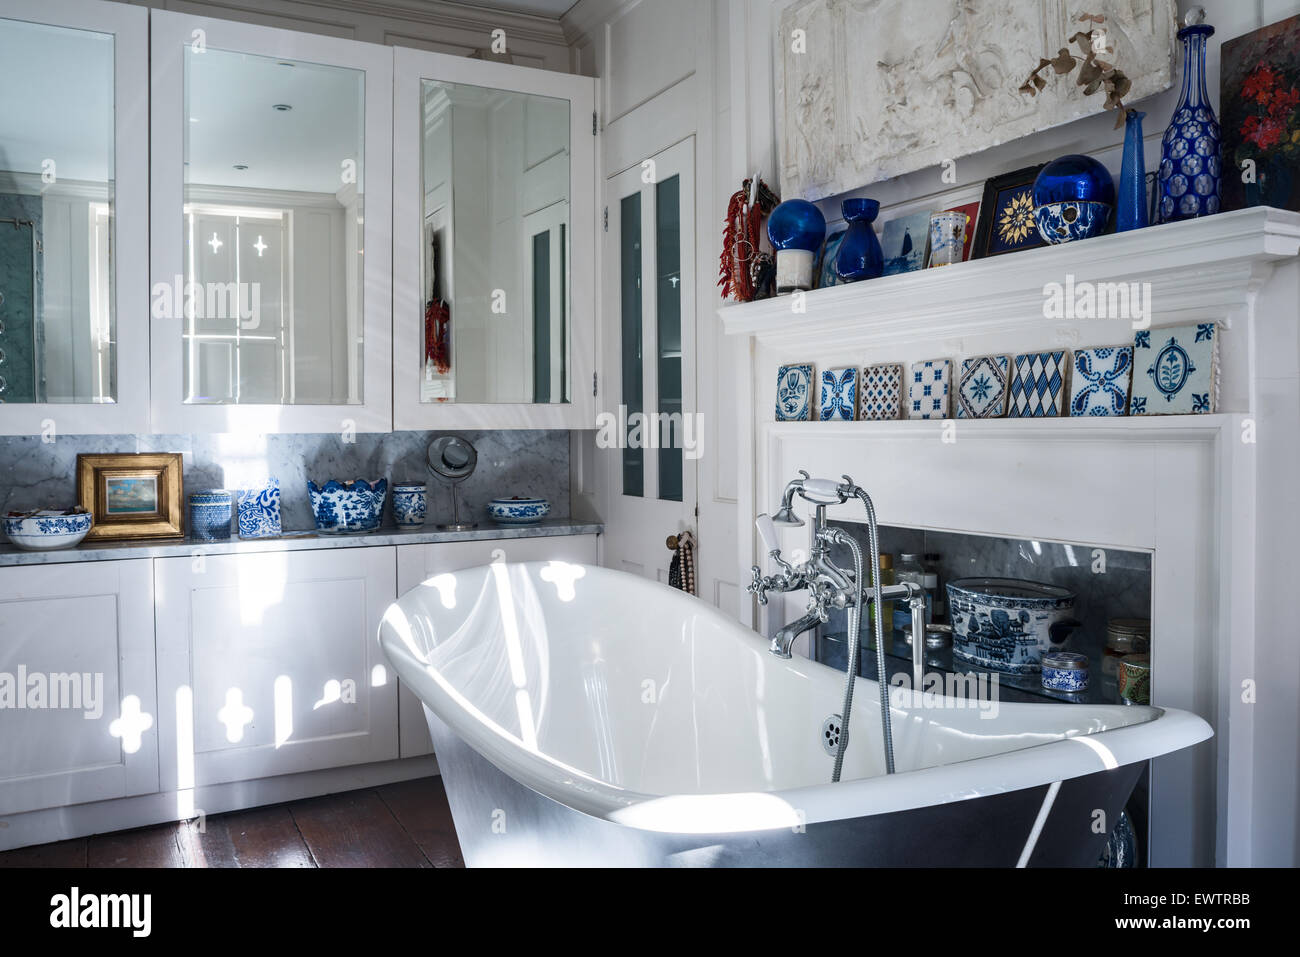 Blue and white decorative tiles on mantlepiece in bathroom with roll top bath from Albion Baths - Stock Image